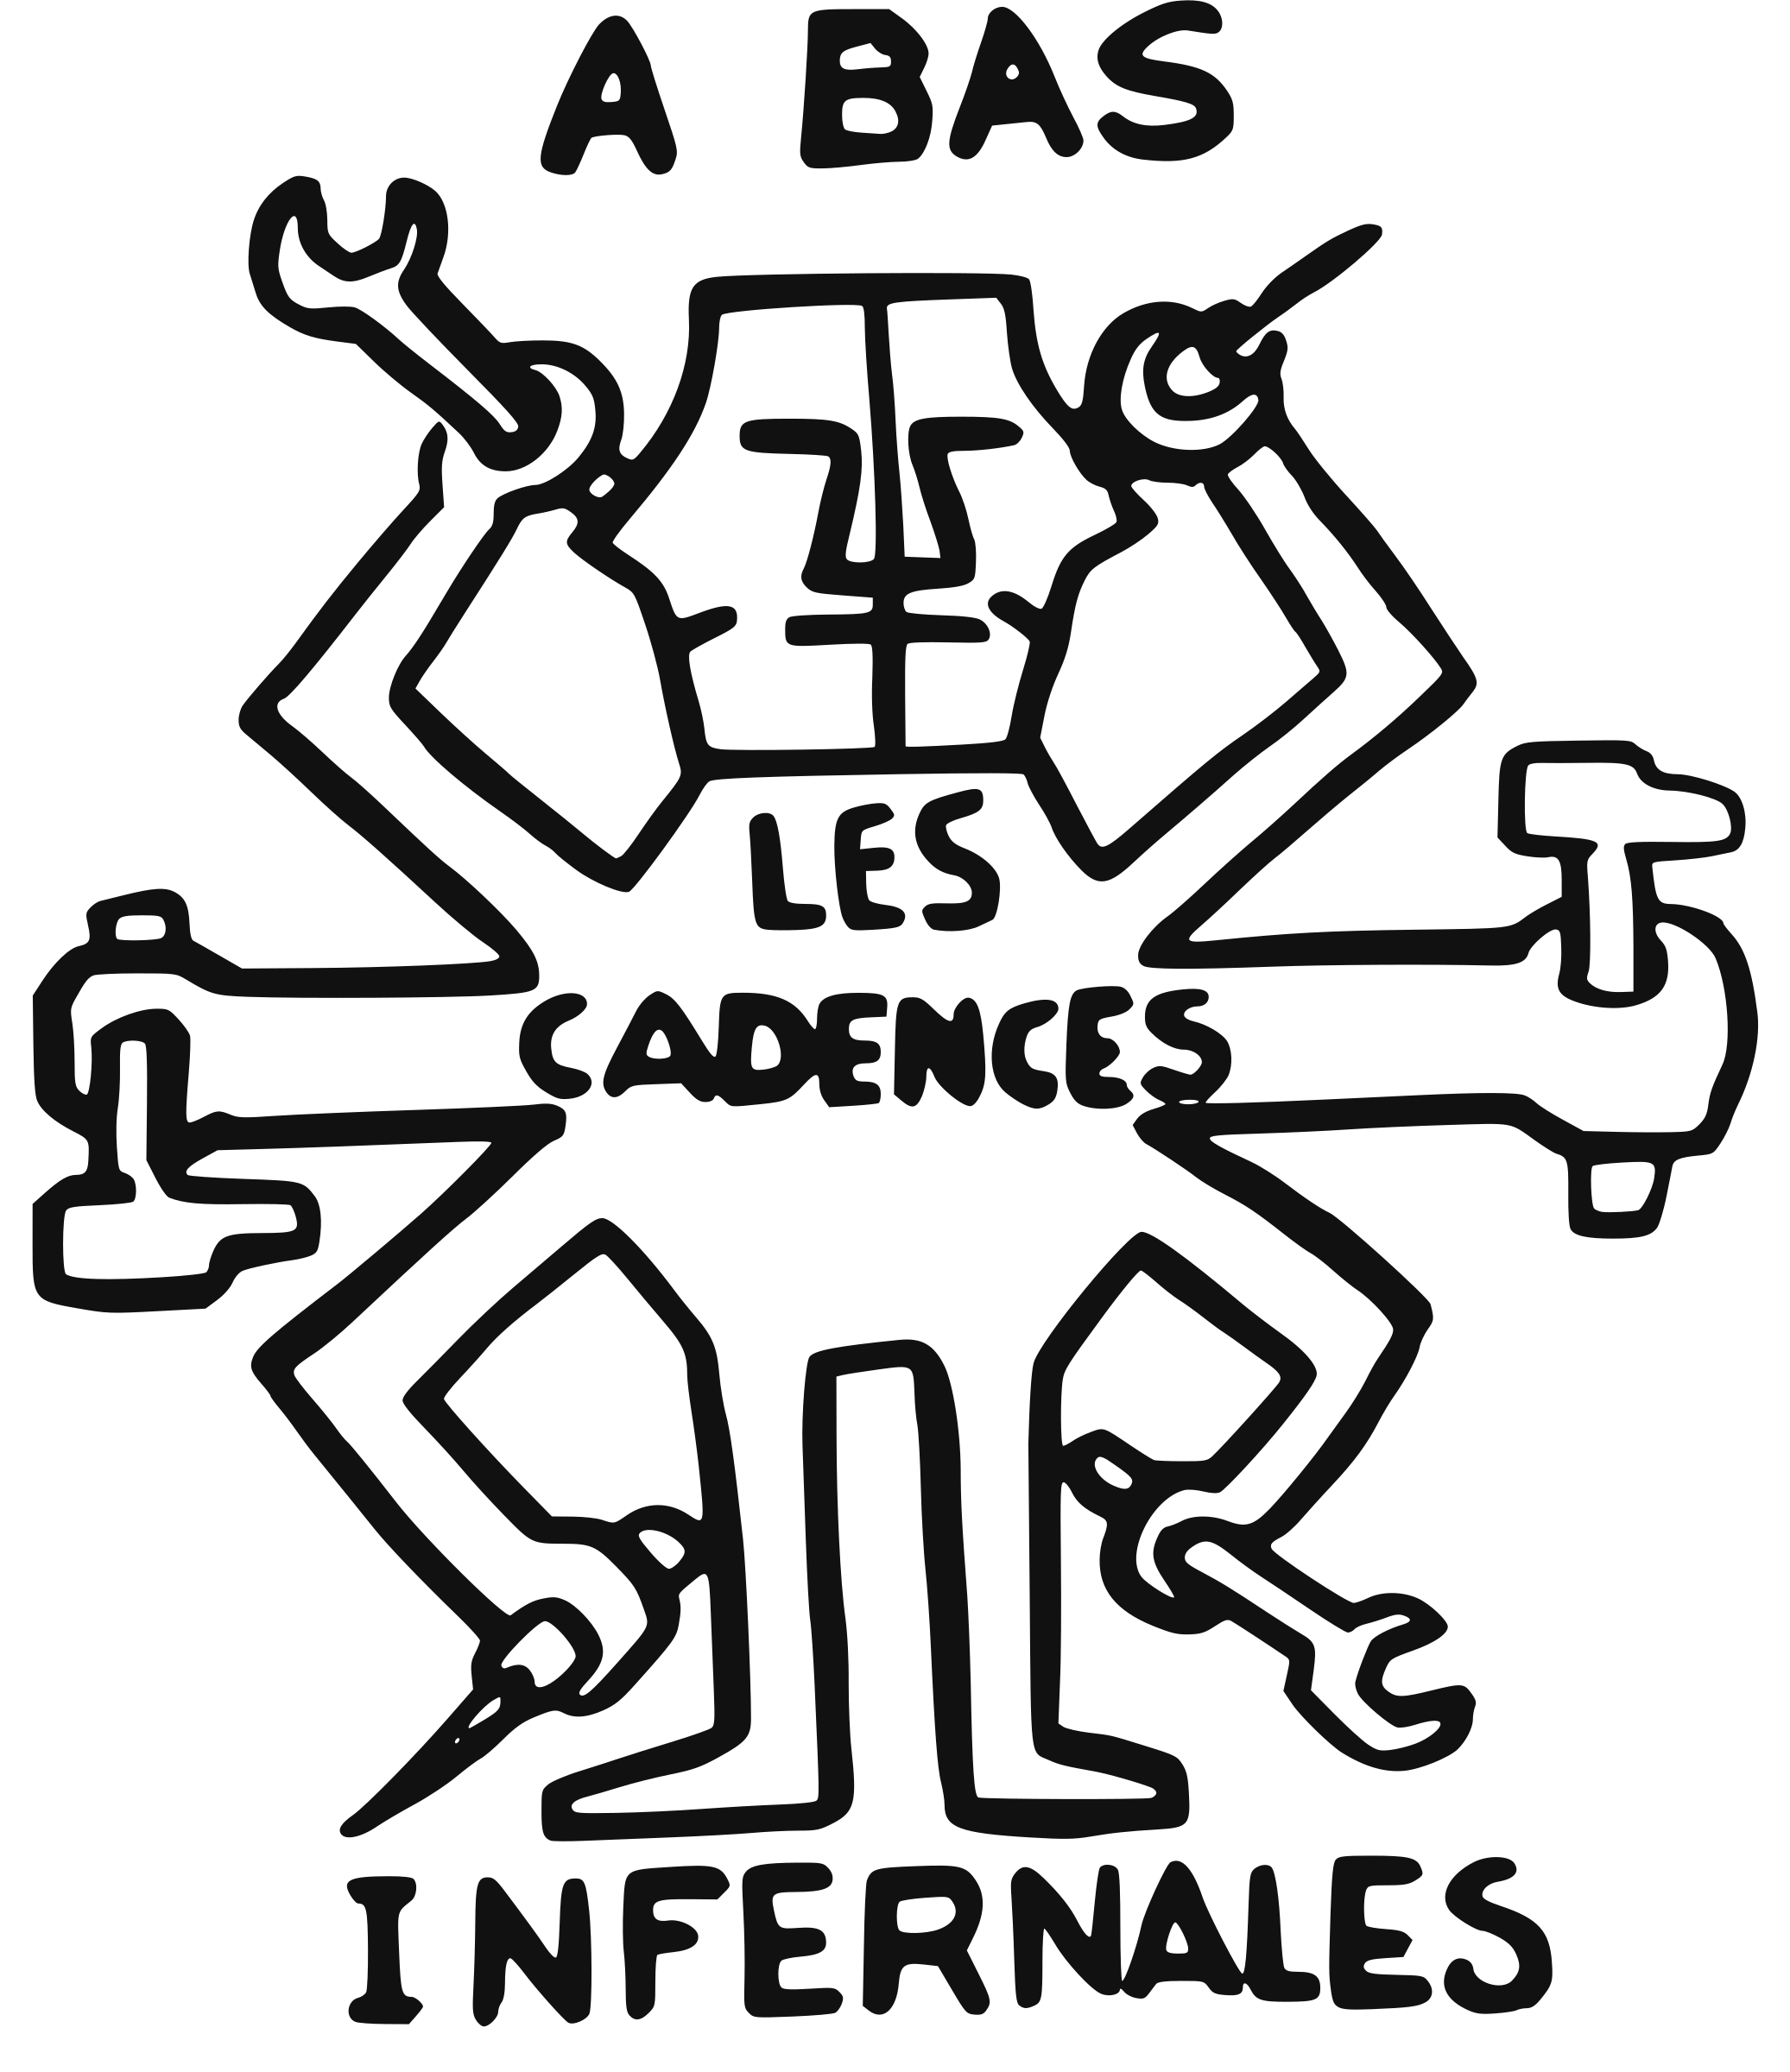 Cadences Infernales (Infernal work pace) by ben